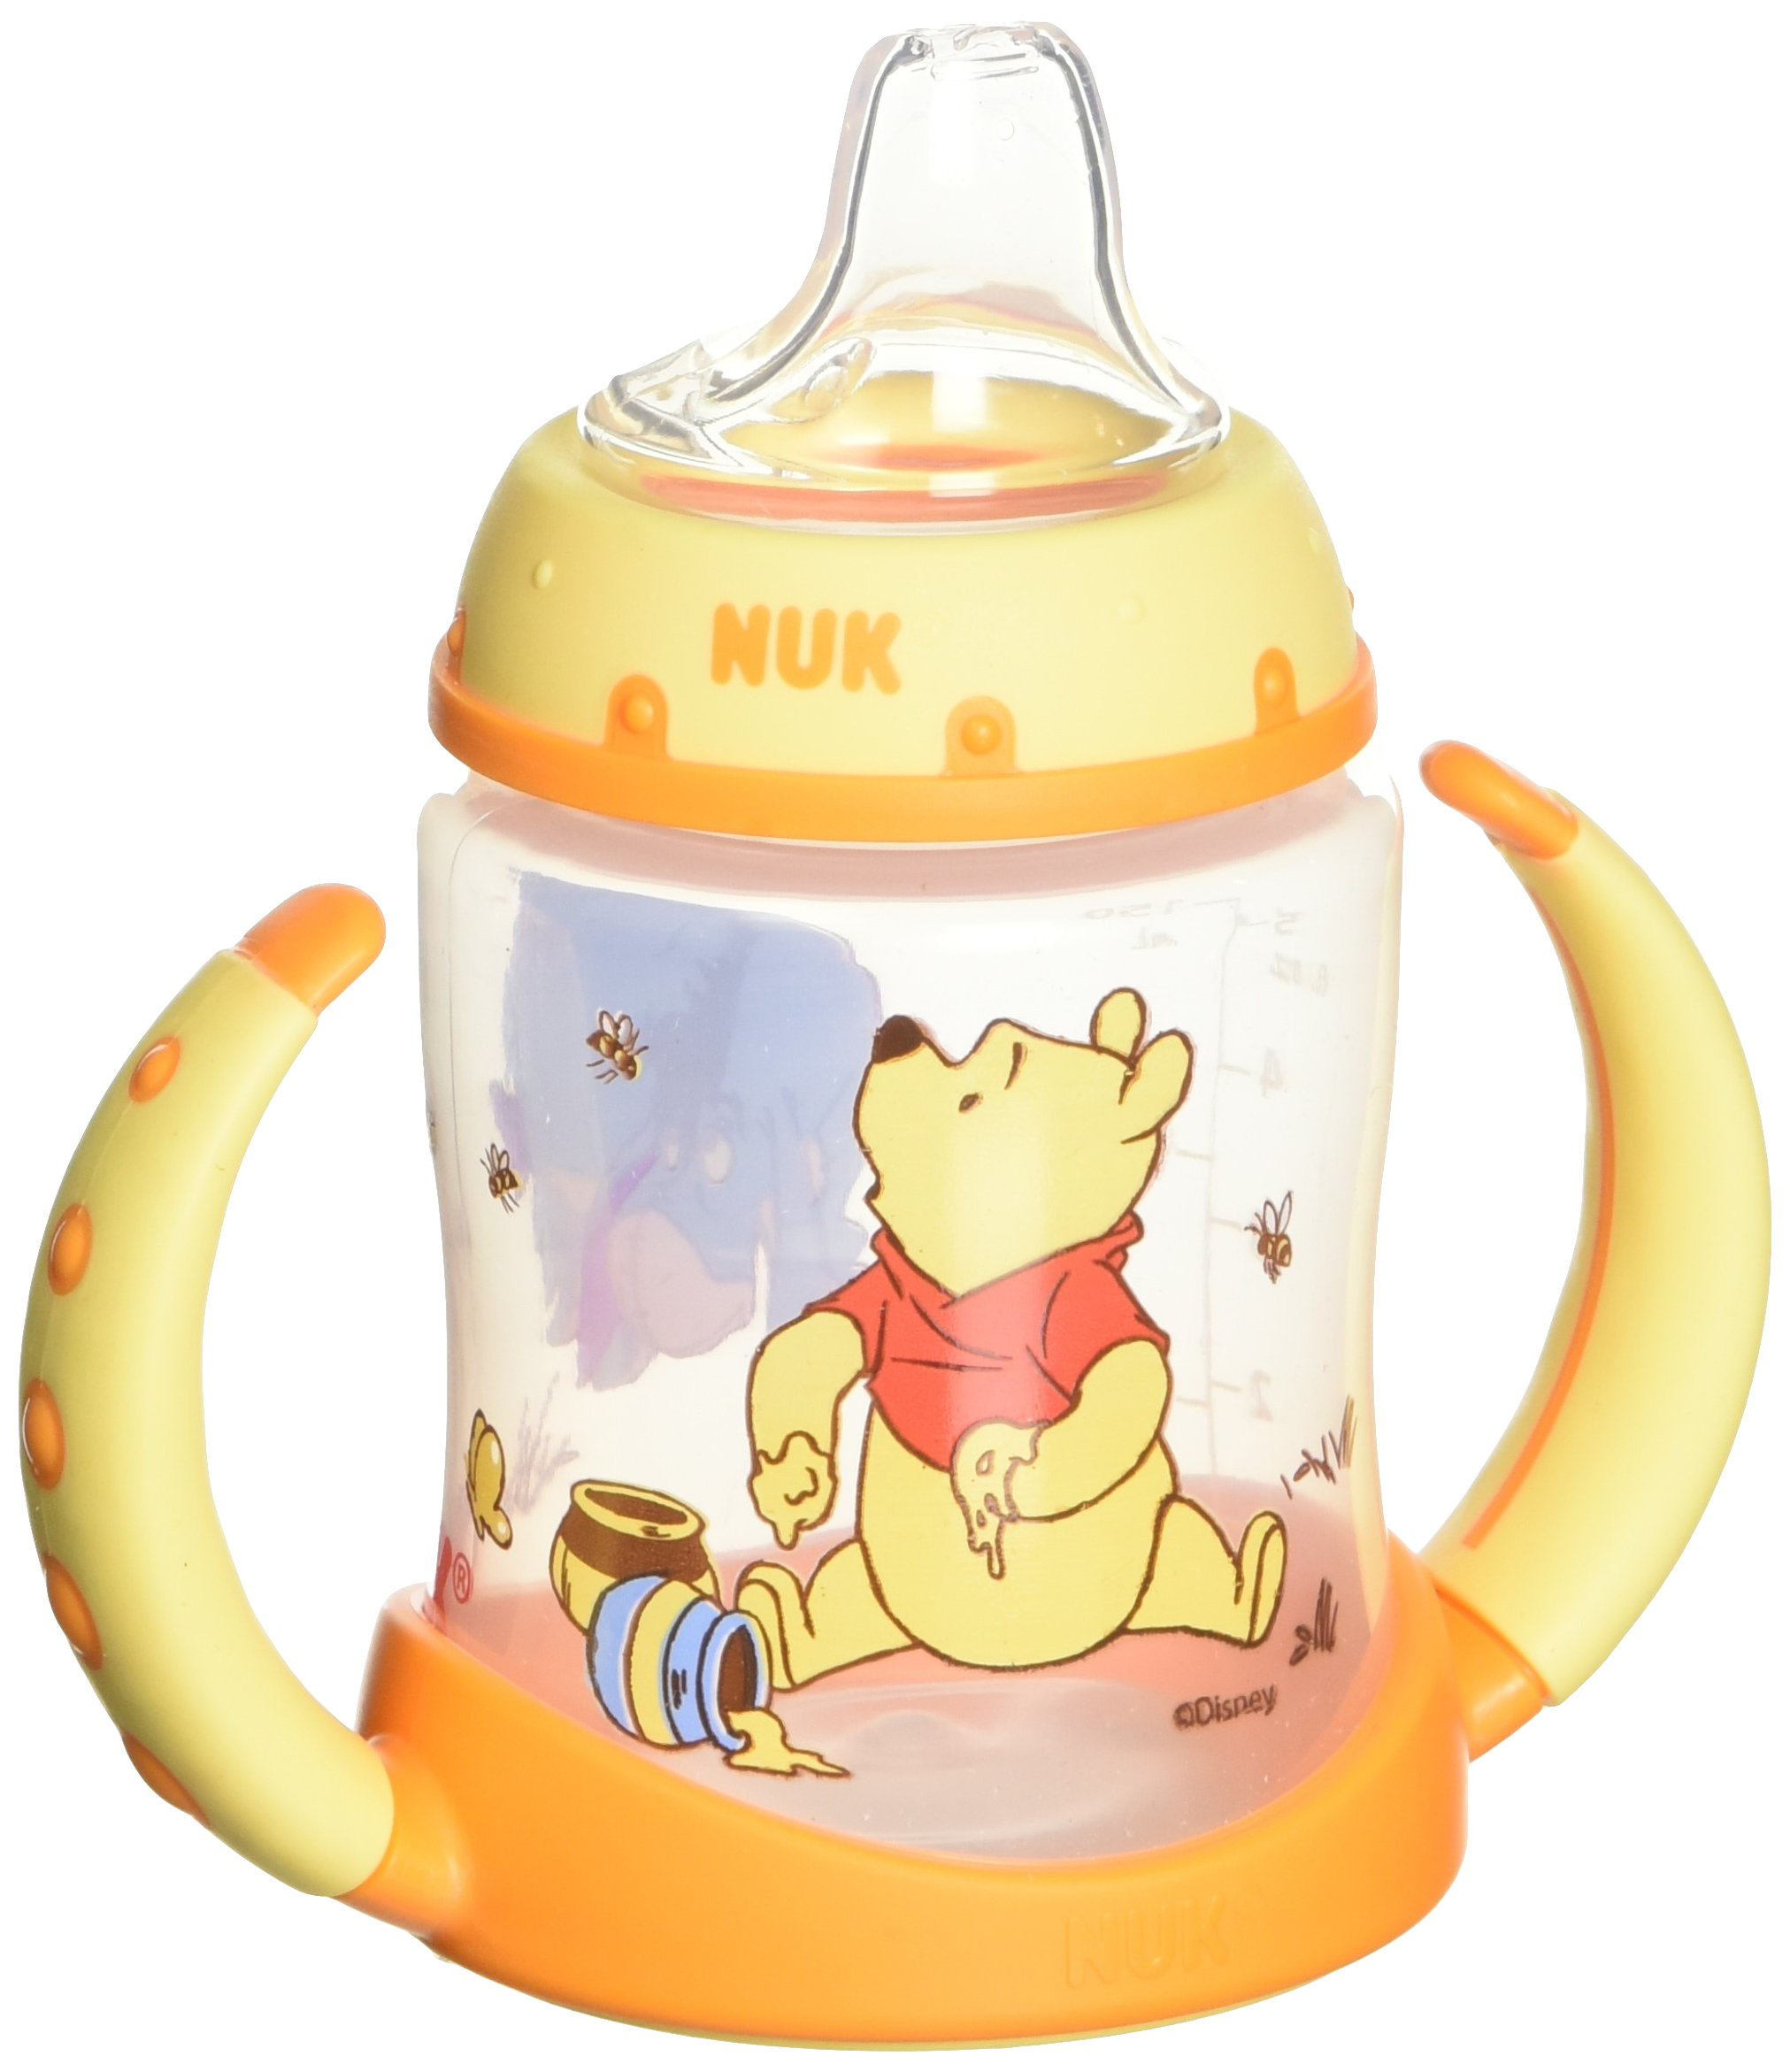 NUK Disney Learner Sippy Cup, Winnie The Pooh, 5oz 1pk